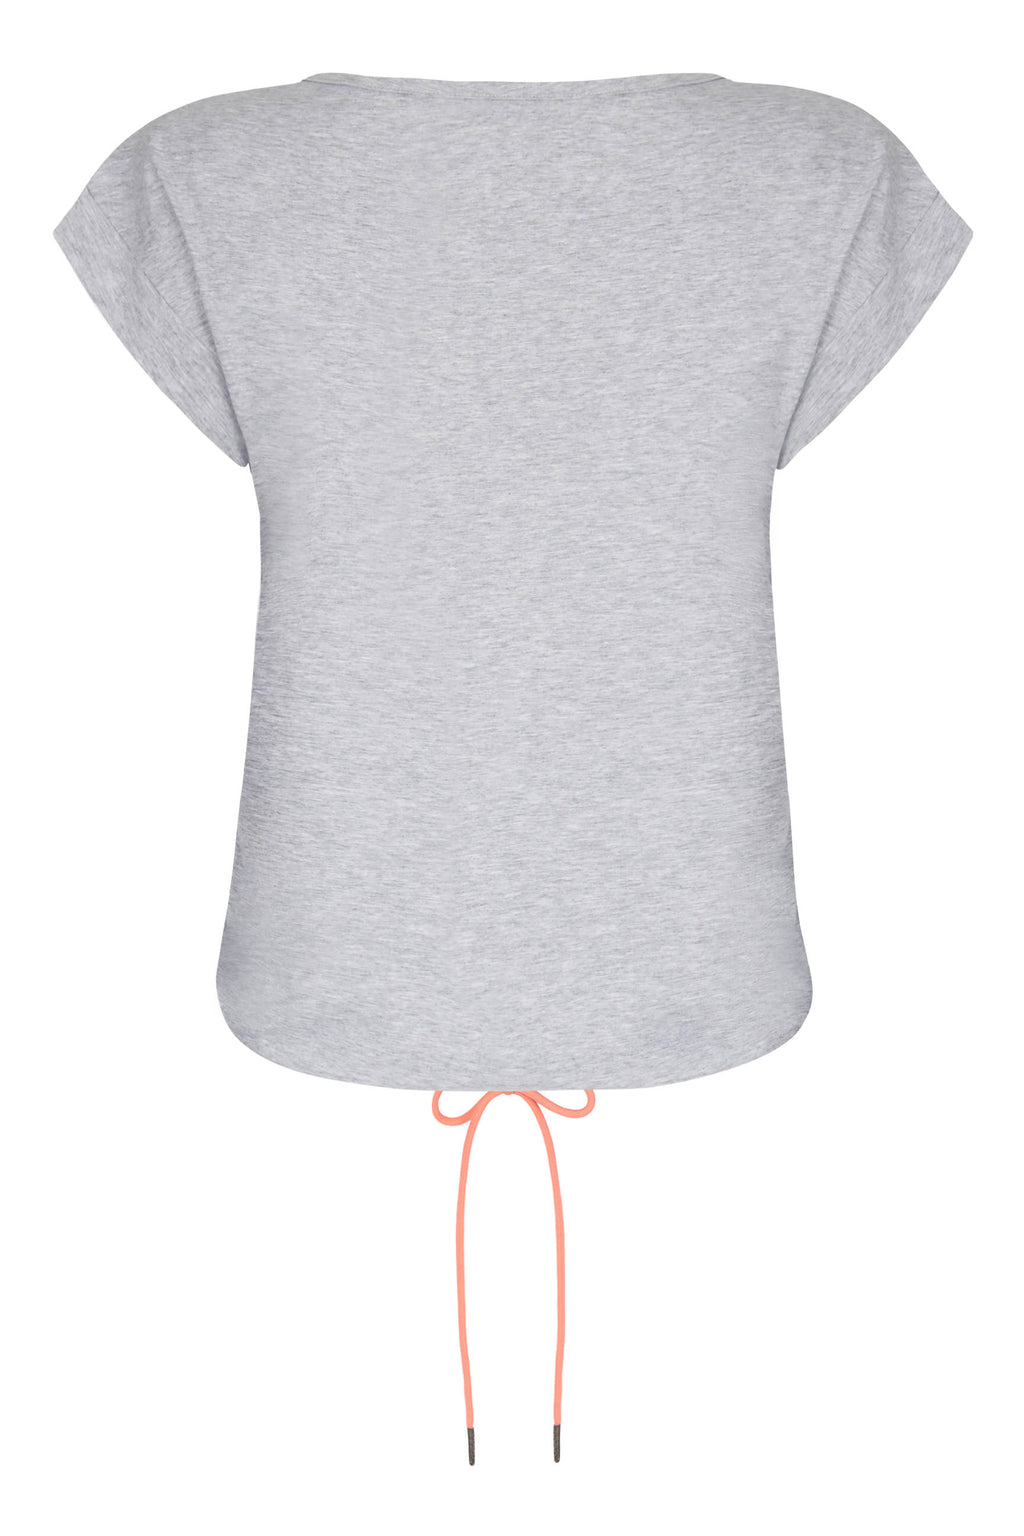 Matilda Grey Marl Jersey Top